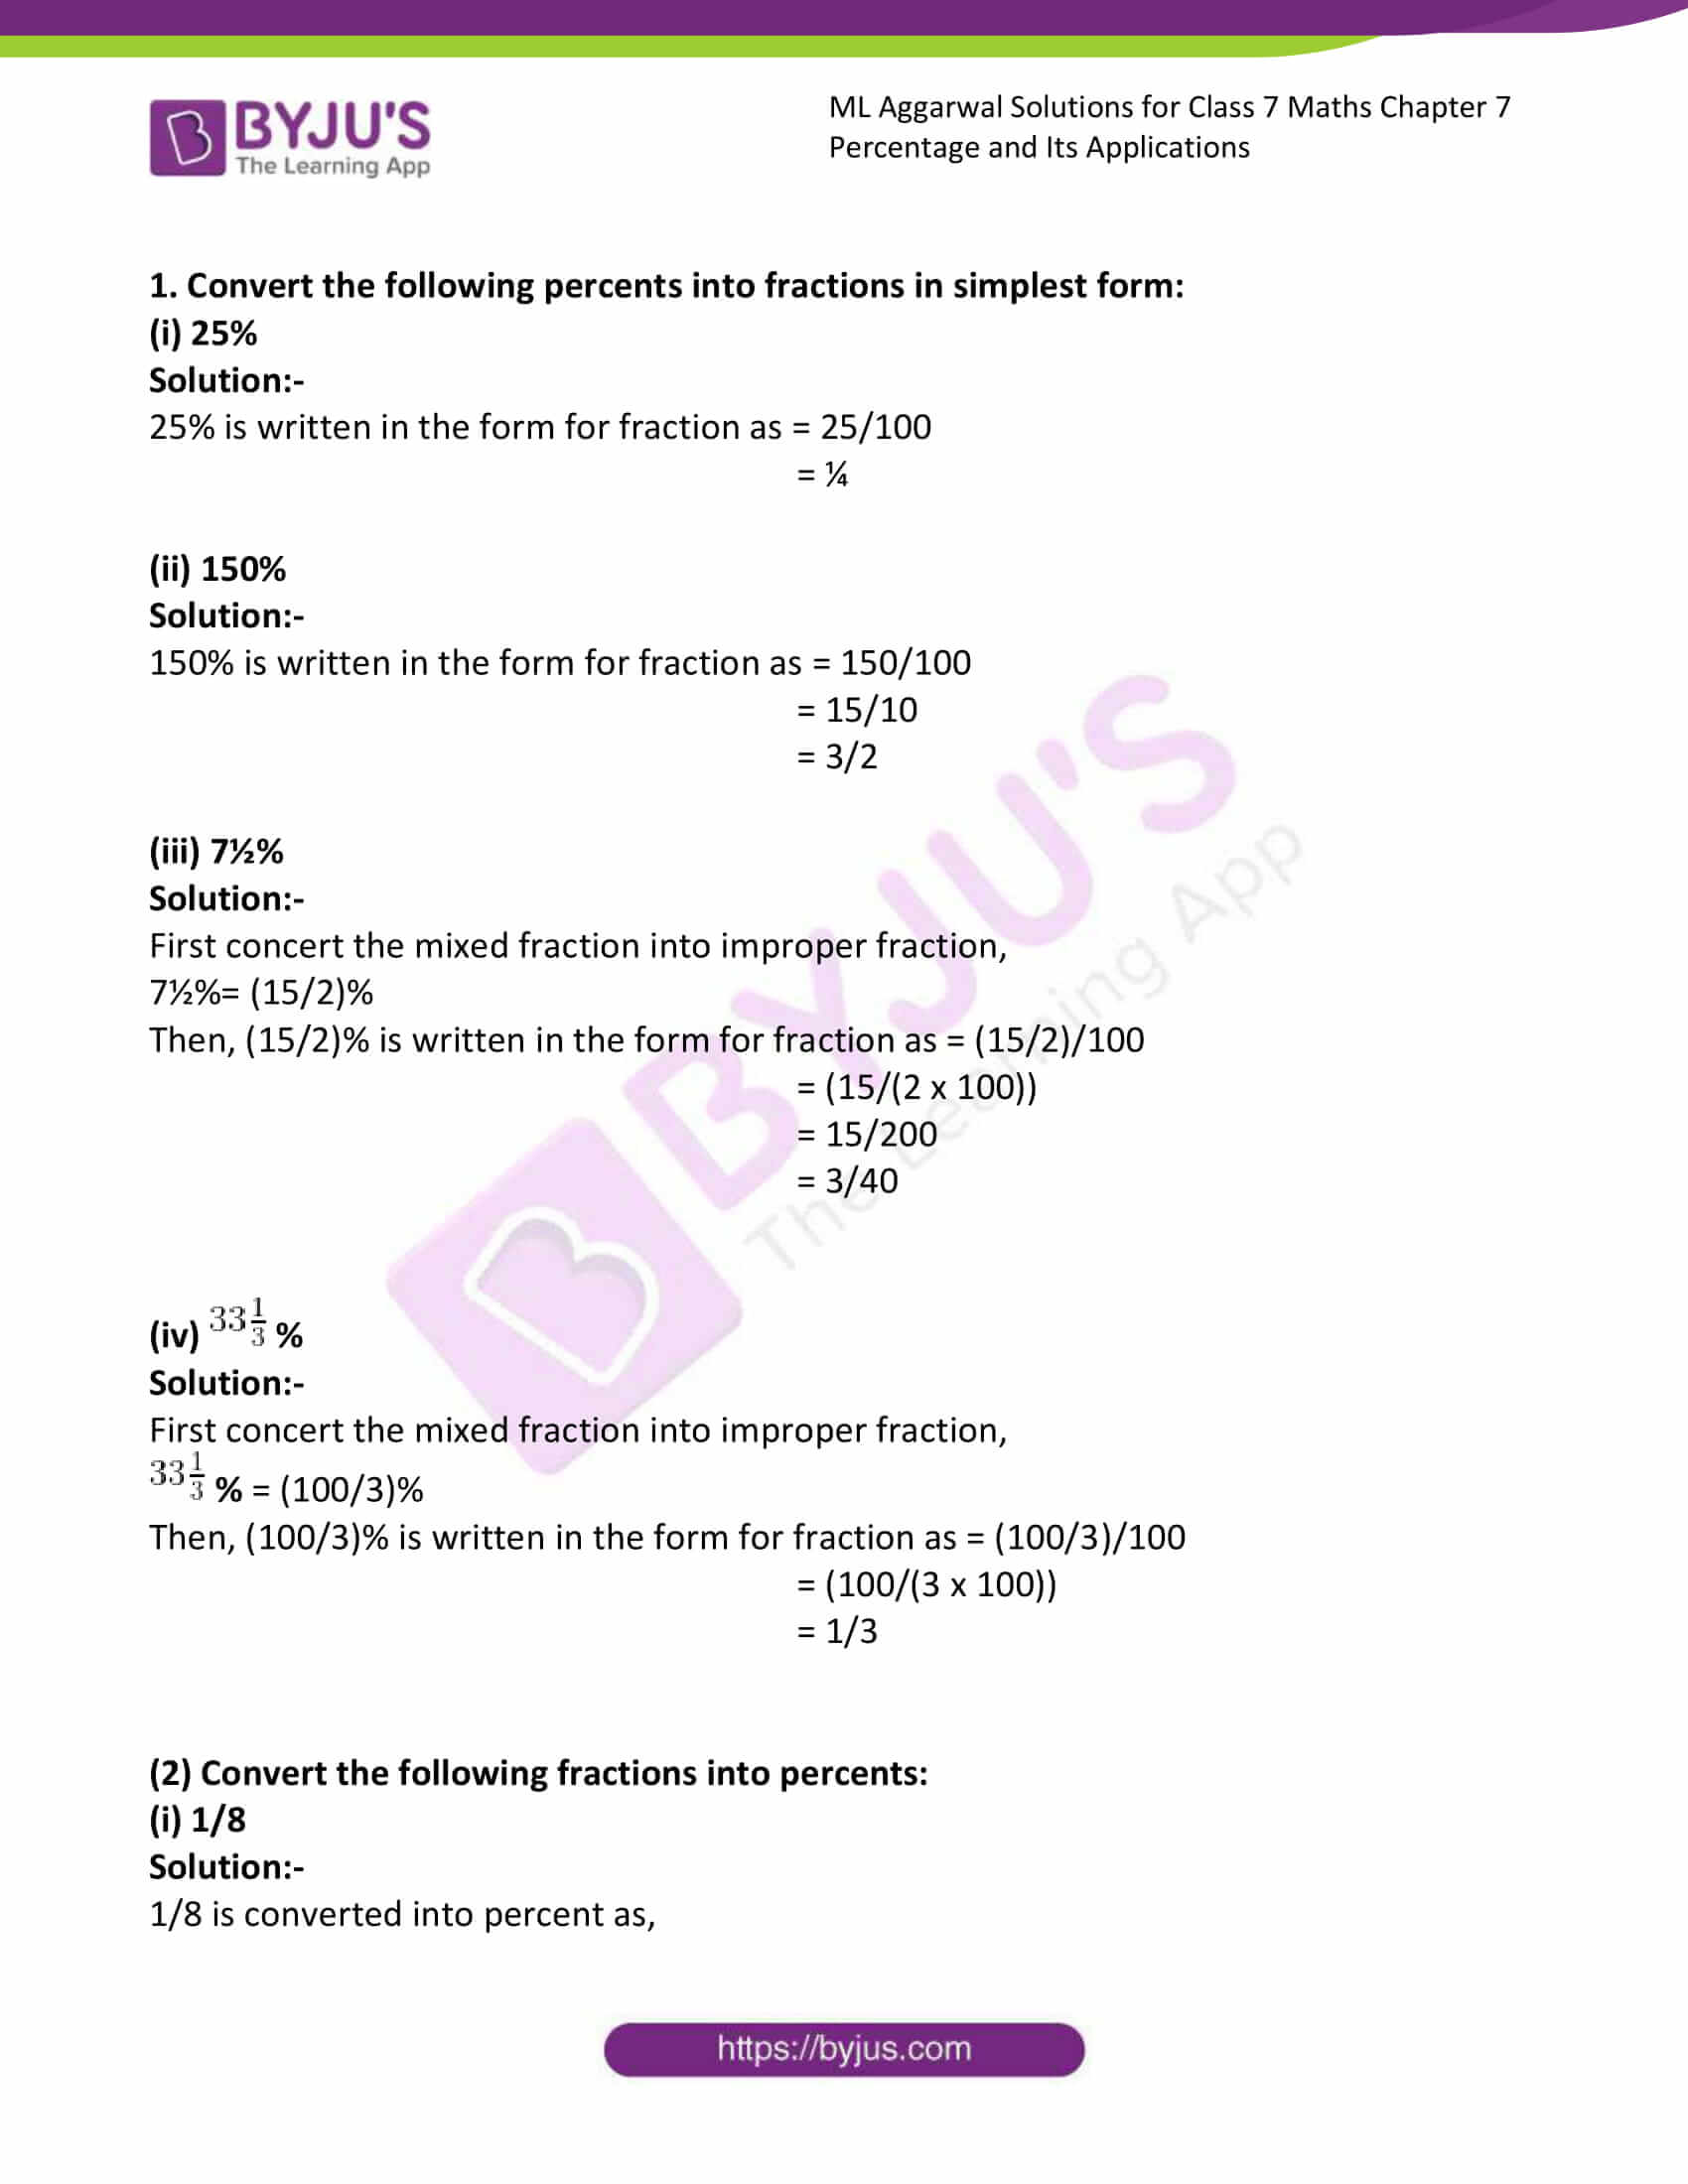 ml aggarwal solutions for class 7 maths chapter 7 1